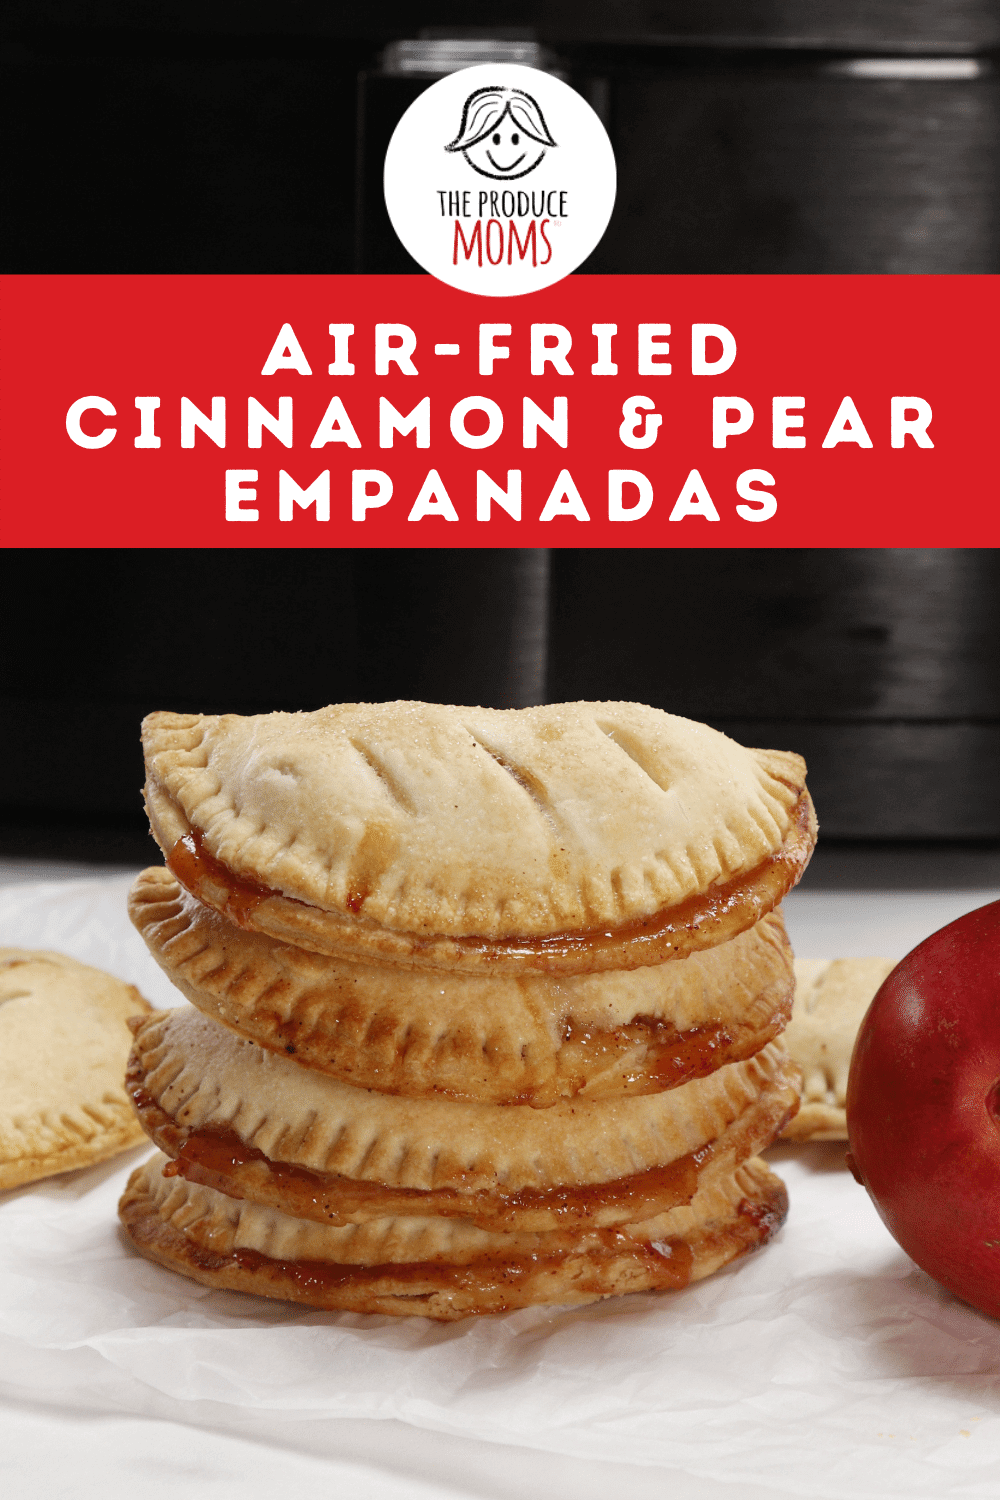 Sweet Cinnamon and Pear Empanadas